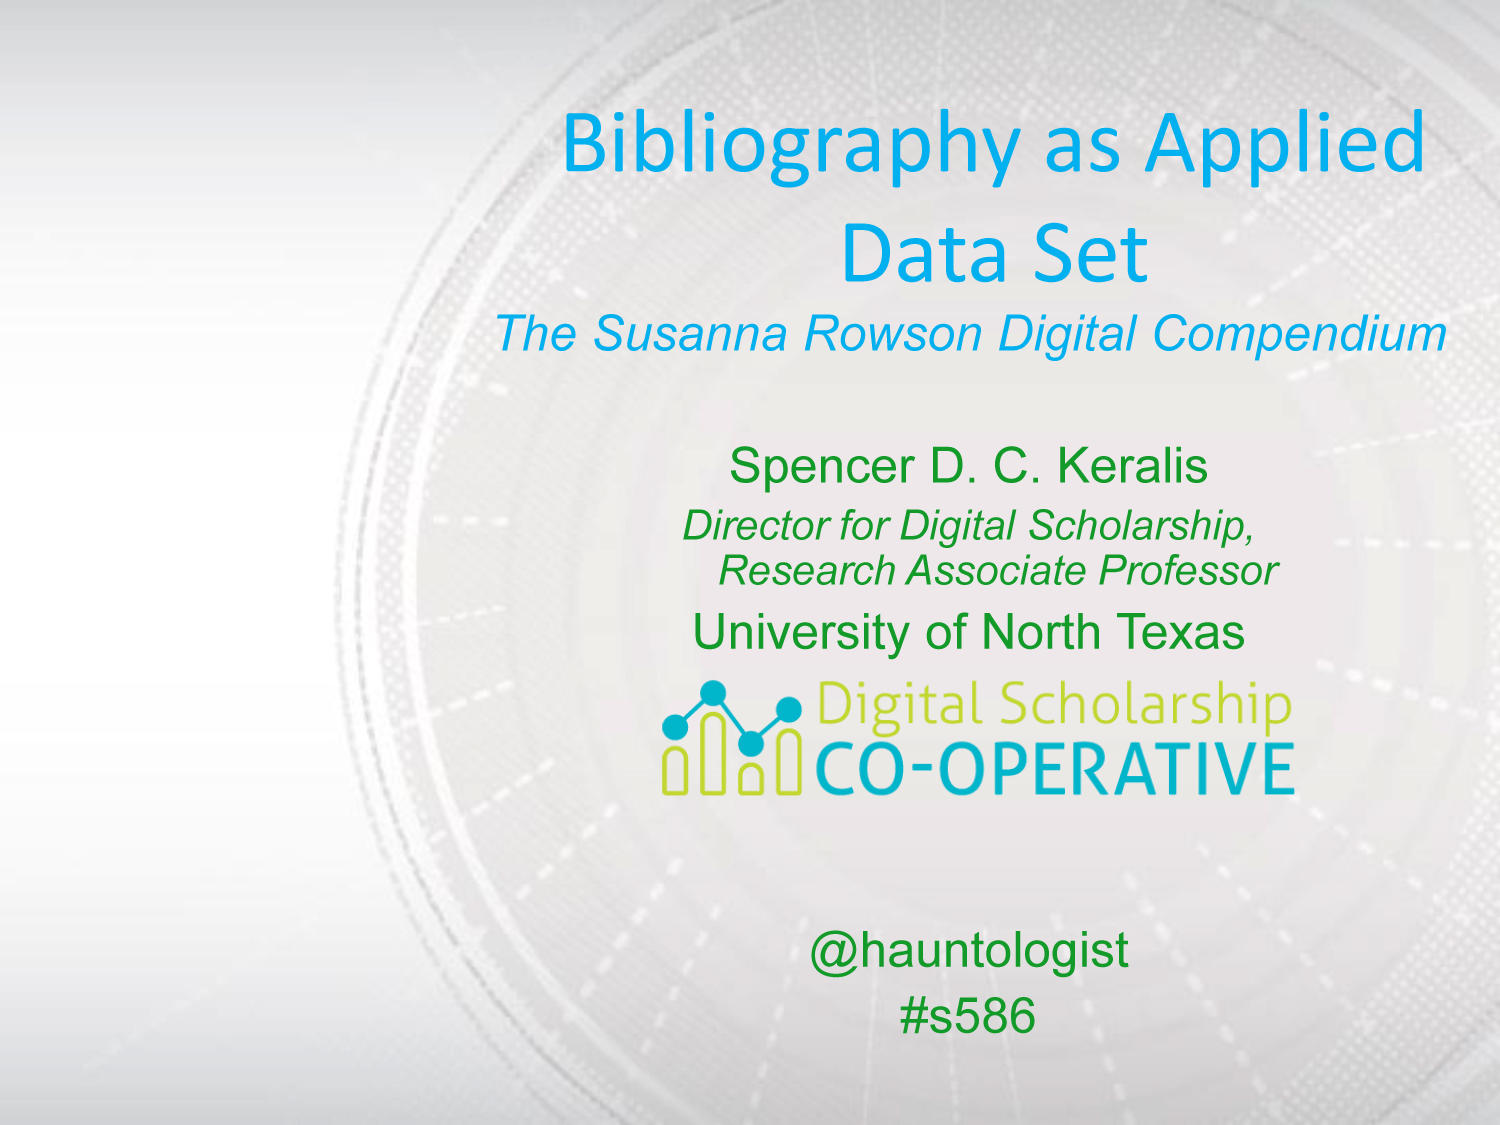 Bibliography as Applied Data Set: The Susanna Rowson Digital Compendium                                                                                                      [Sequence #]: 1 of 17